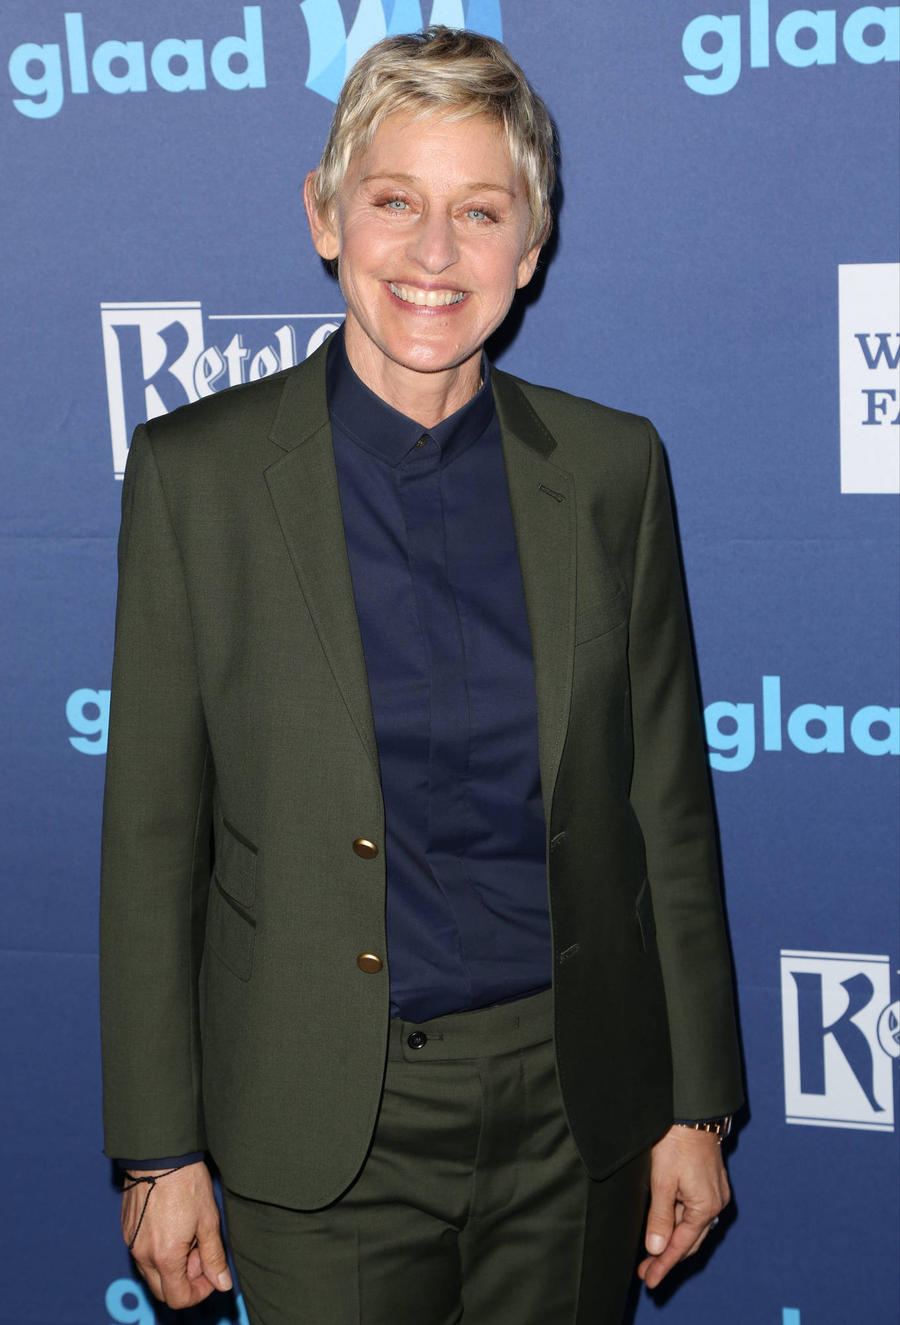 Ellen Degeneres Sued By Woman She Mocked On Tv